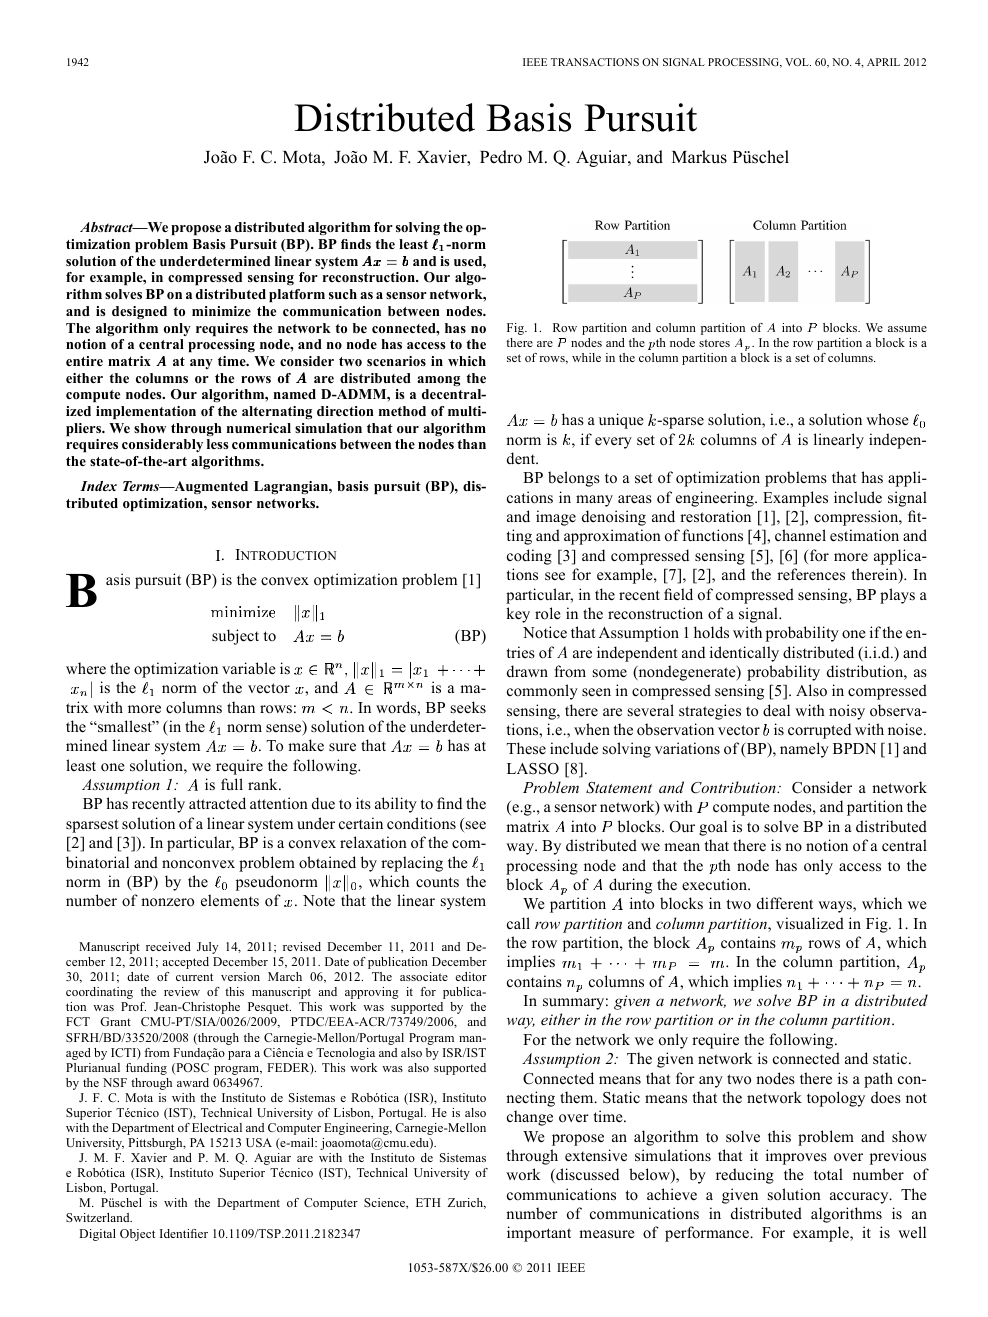 Distributed Basis Pursuit – topic of research paper in